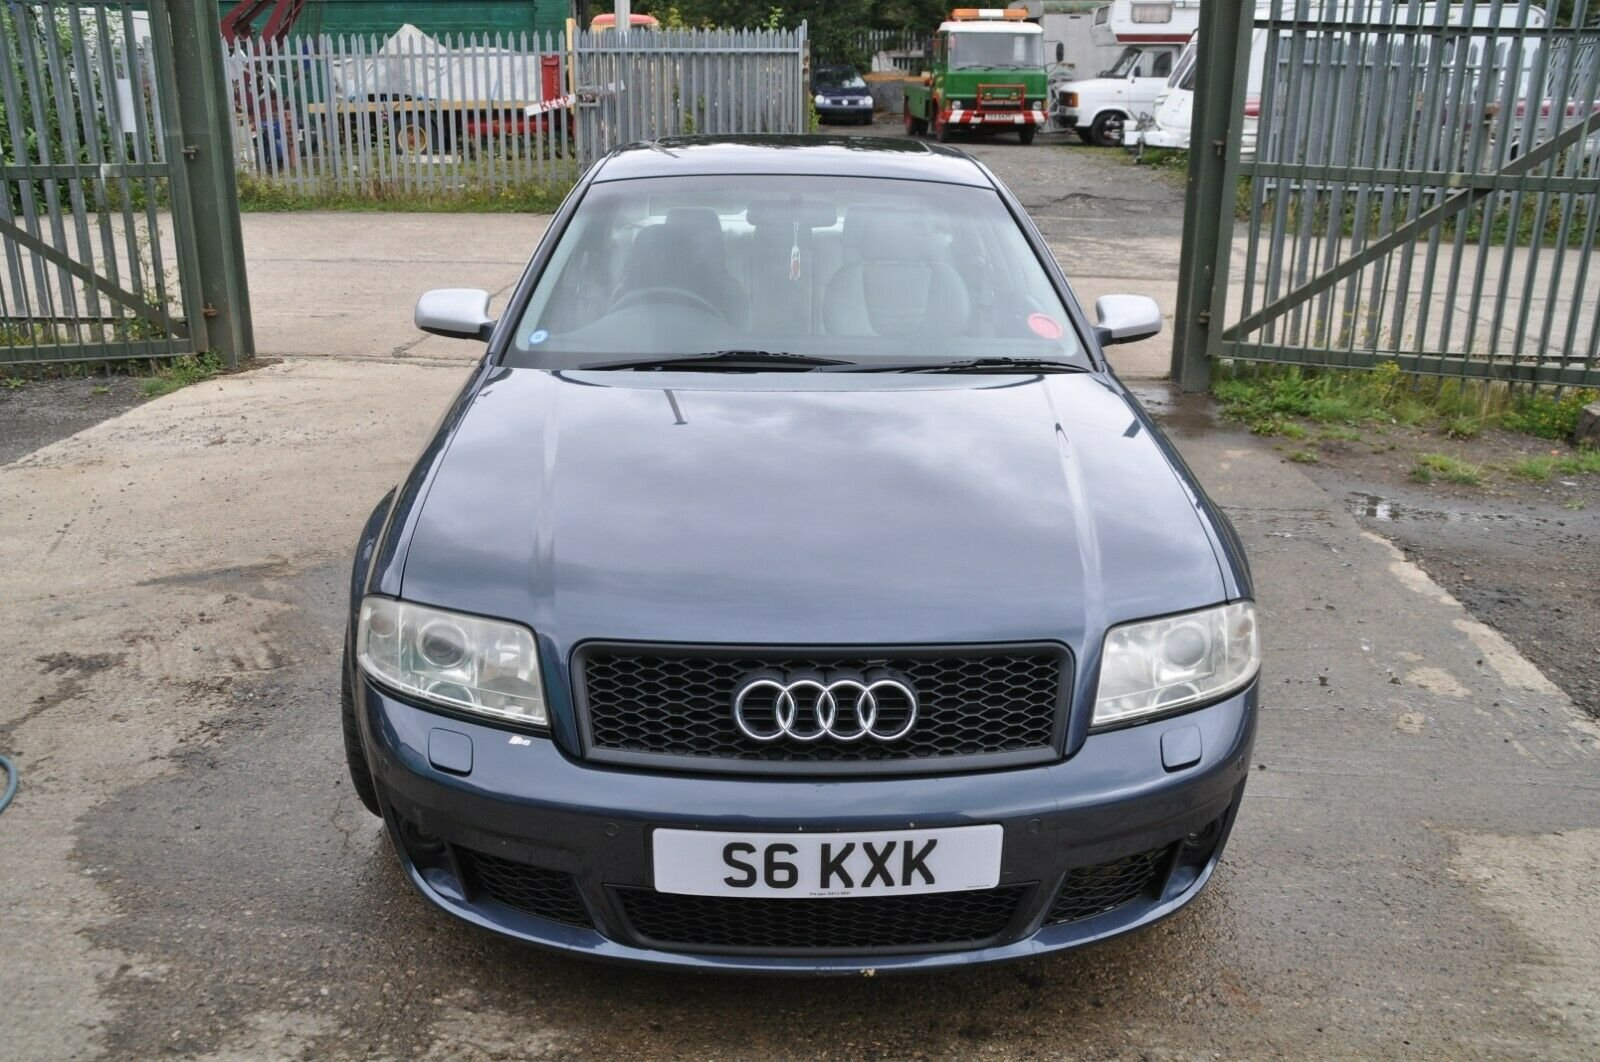 2002 AUDI S6 LOW MILES LEATHER RECAROS BOSE STAINLESS EXHAUSAUST For Sale (picture 2 of 6)